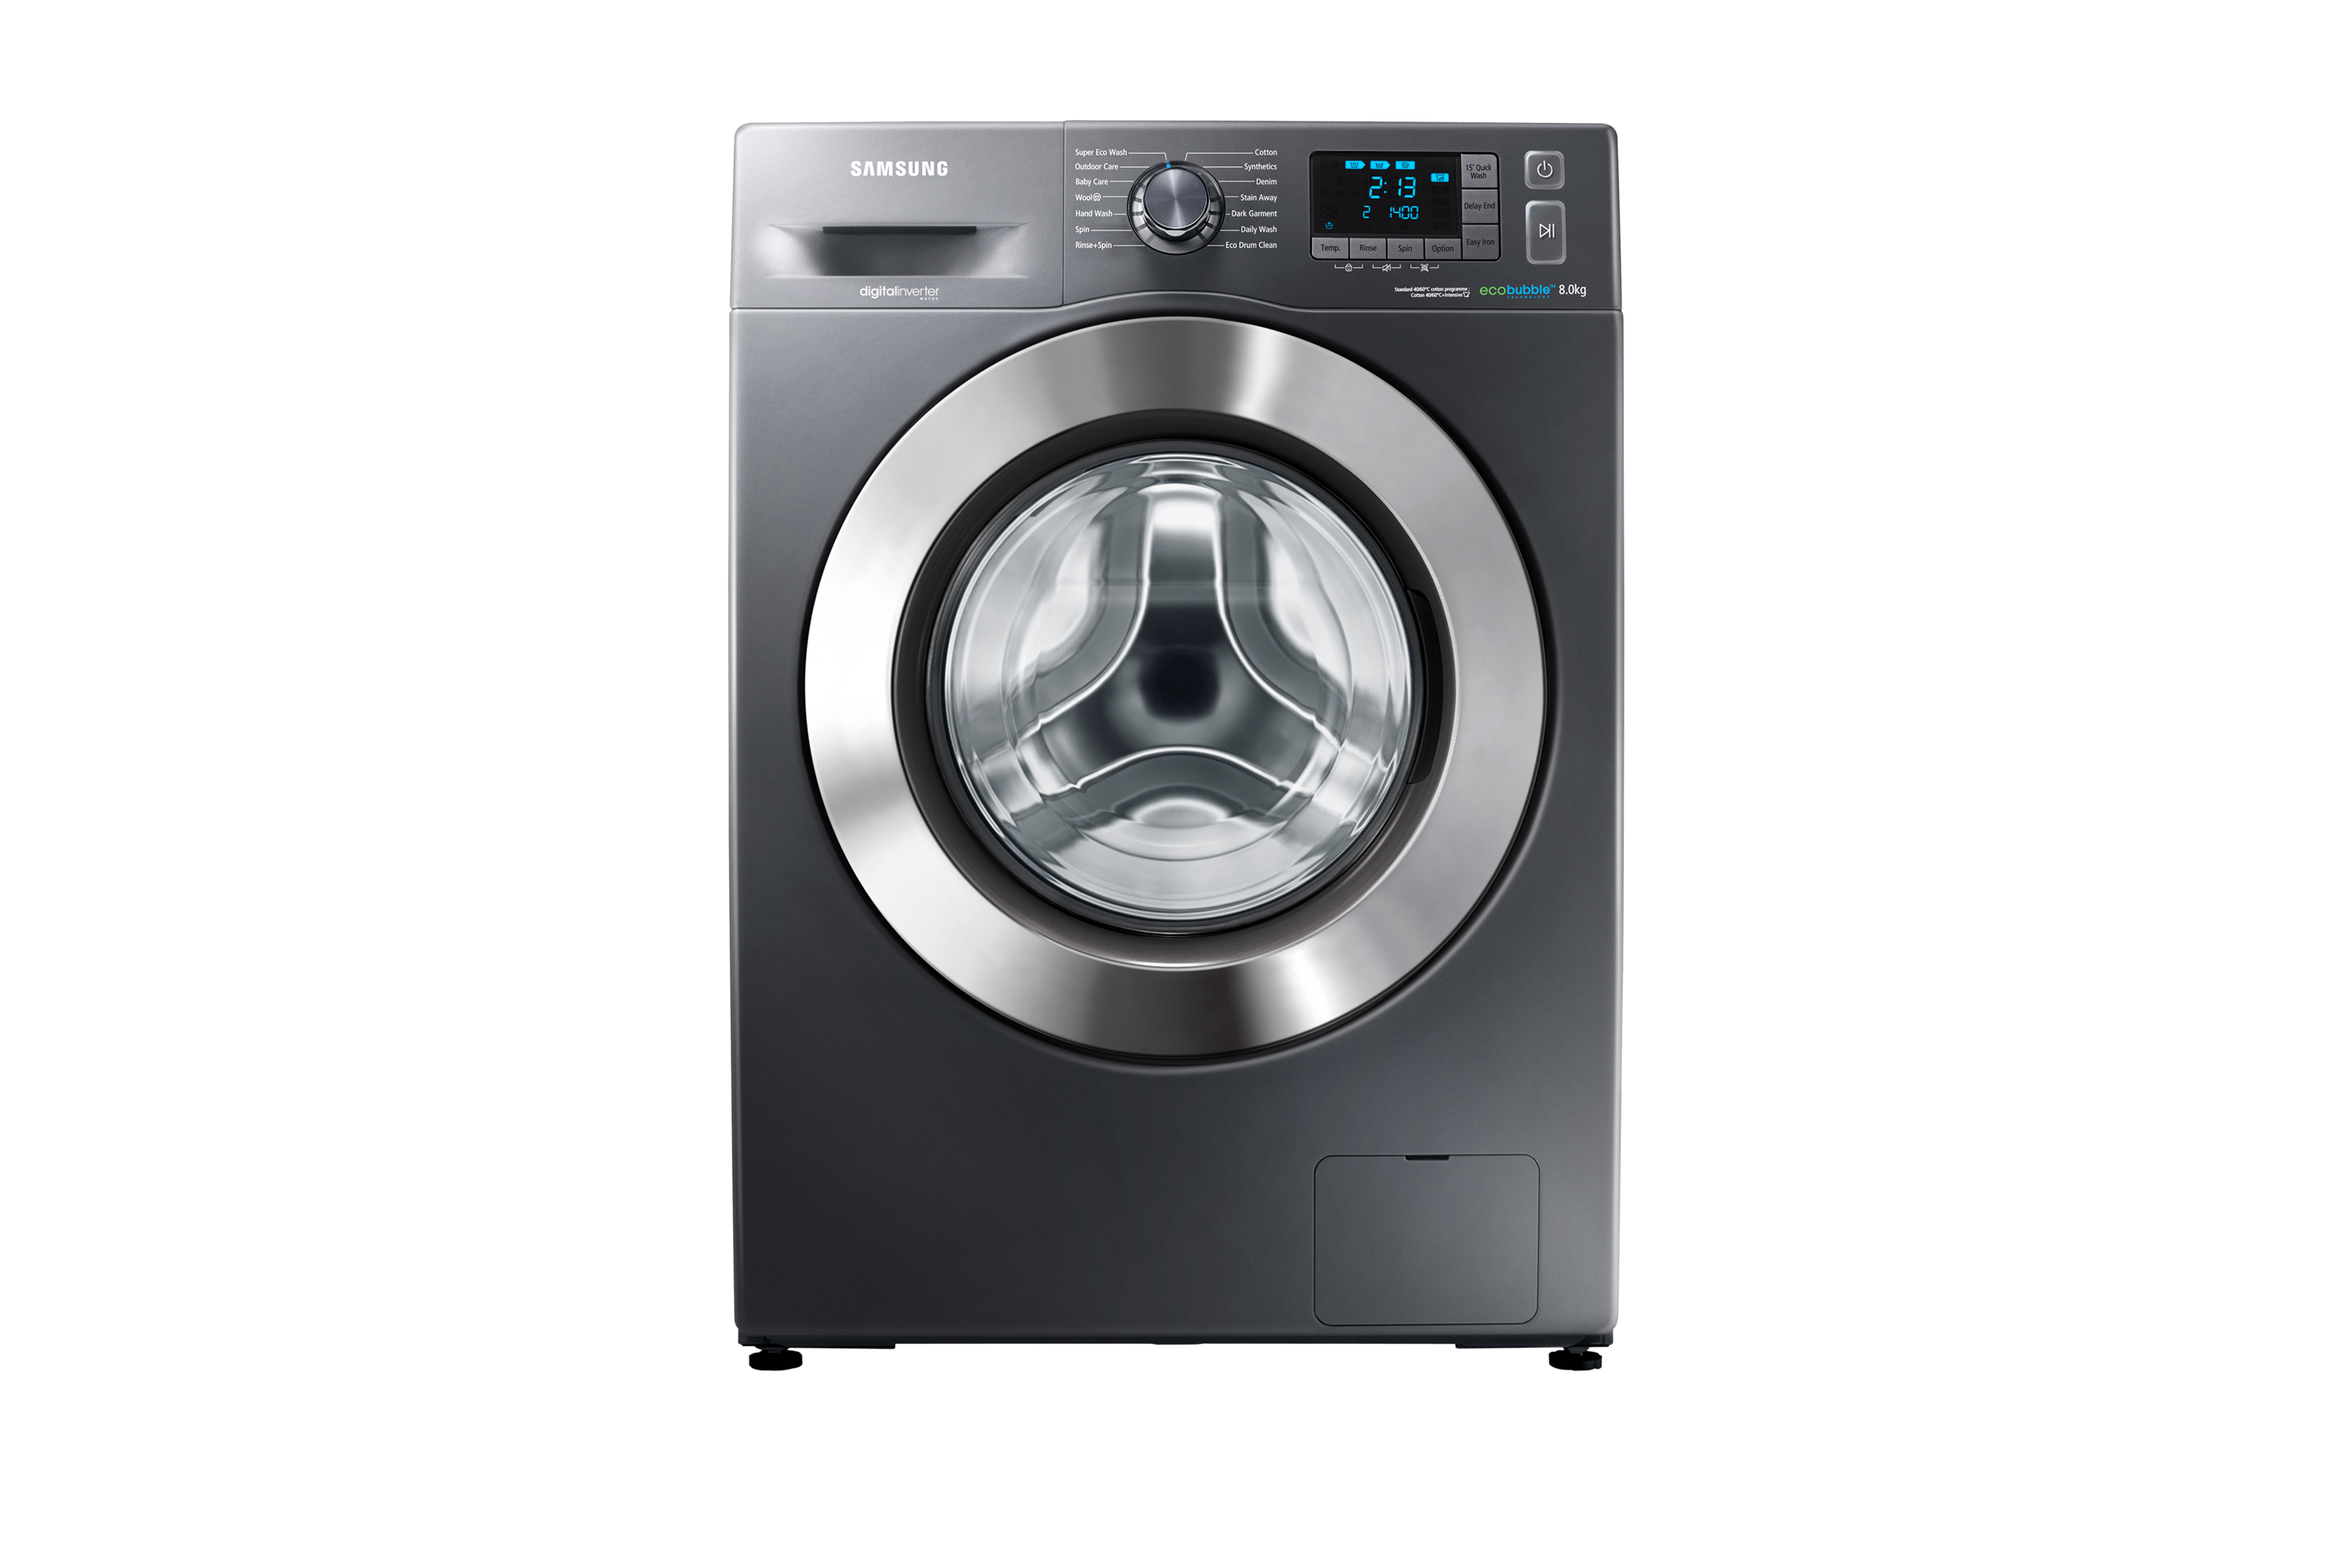 F500 Washing Machine with ecobubble, 8 kg